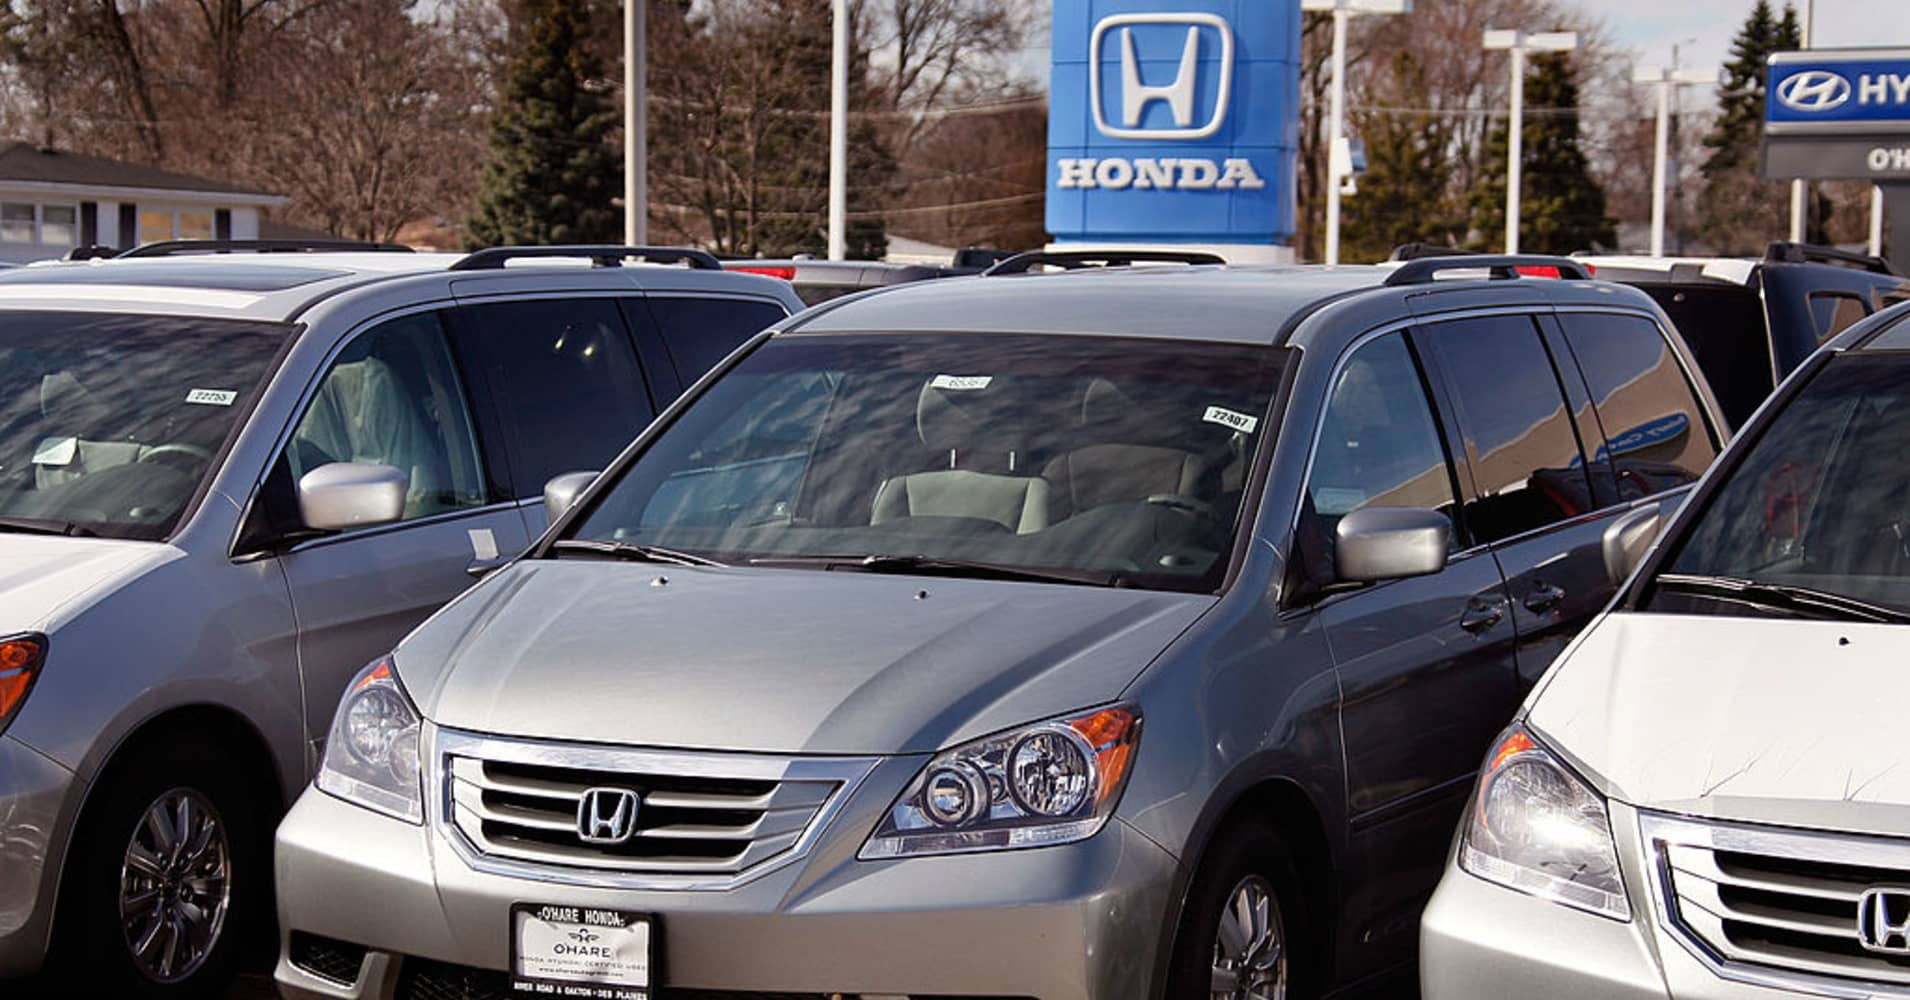 Honda to recall about 650,000 Odyssey minivans in US